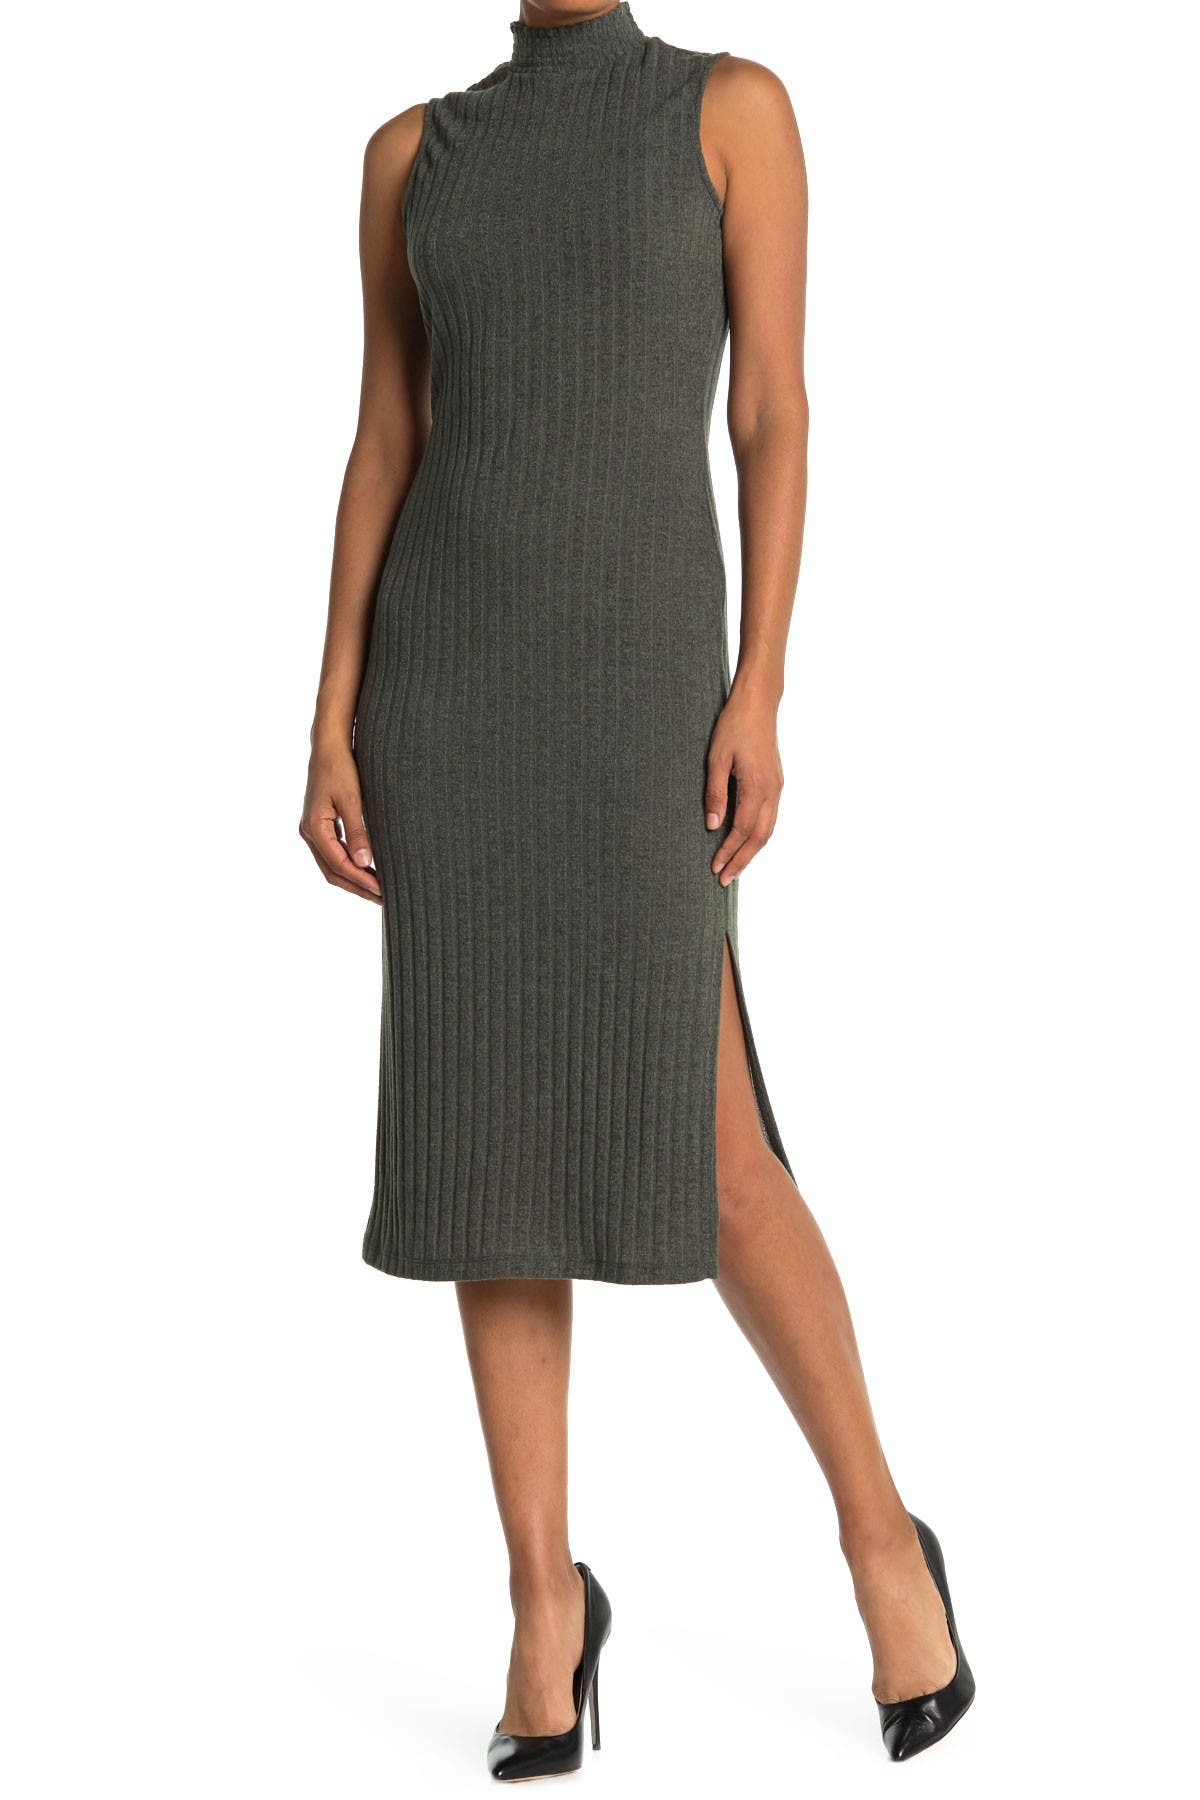 Image of Collective Concepts Mock Neck Ribbed Knit Midi Dress